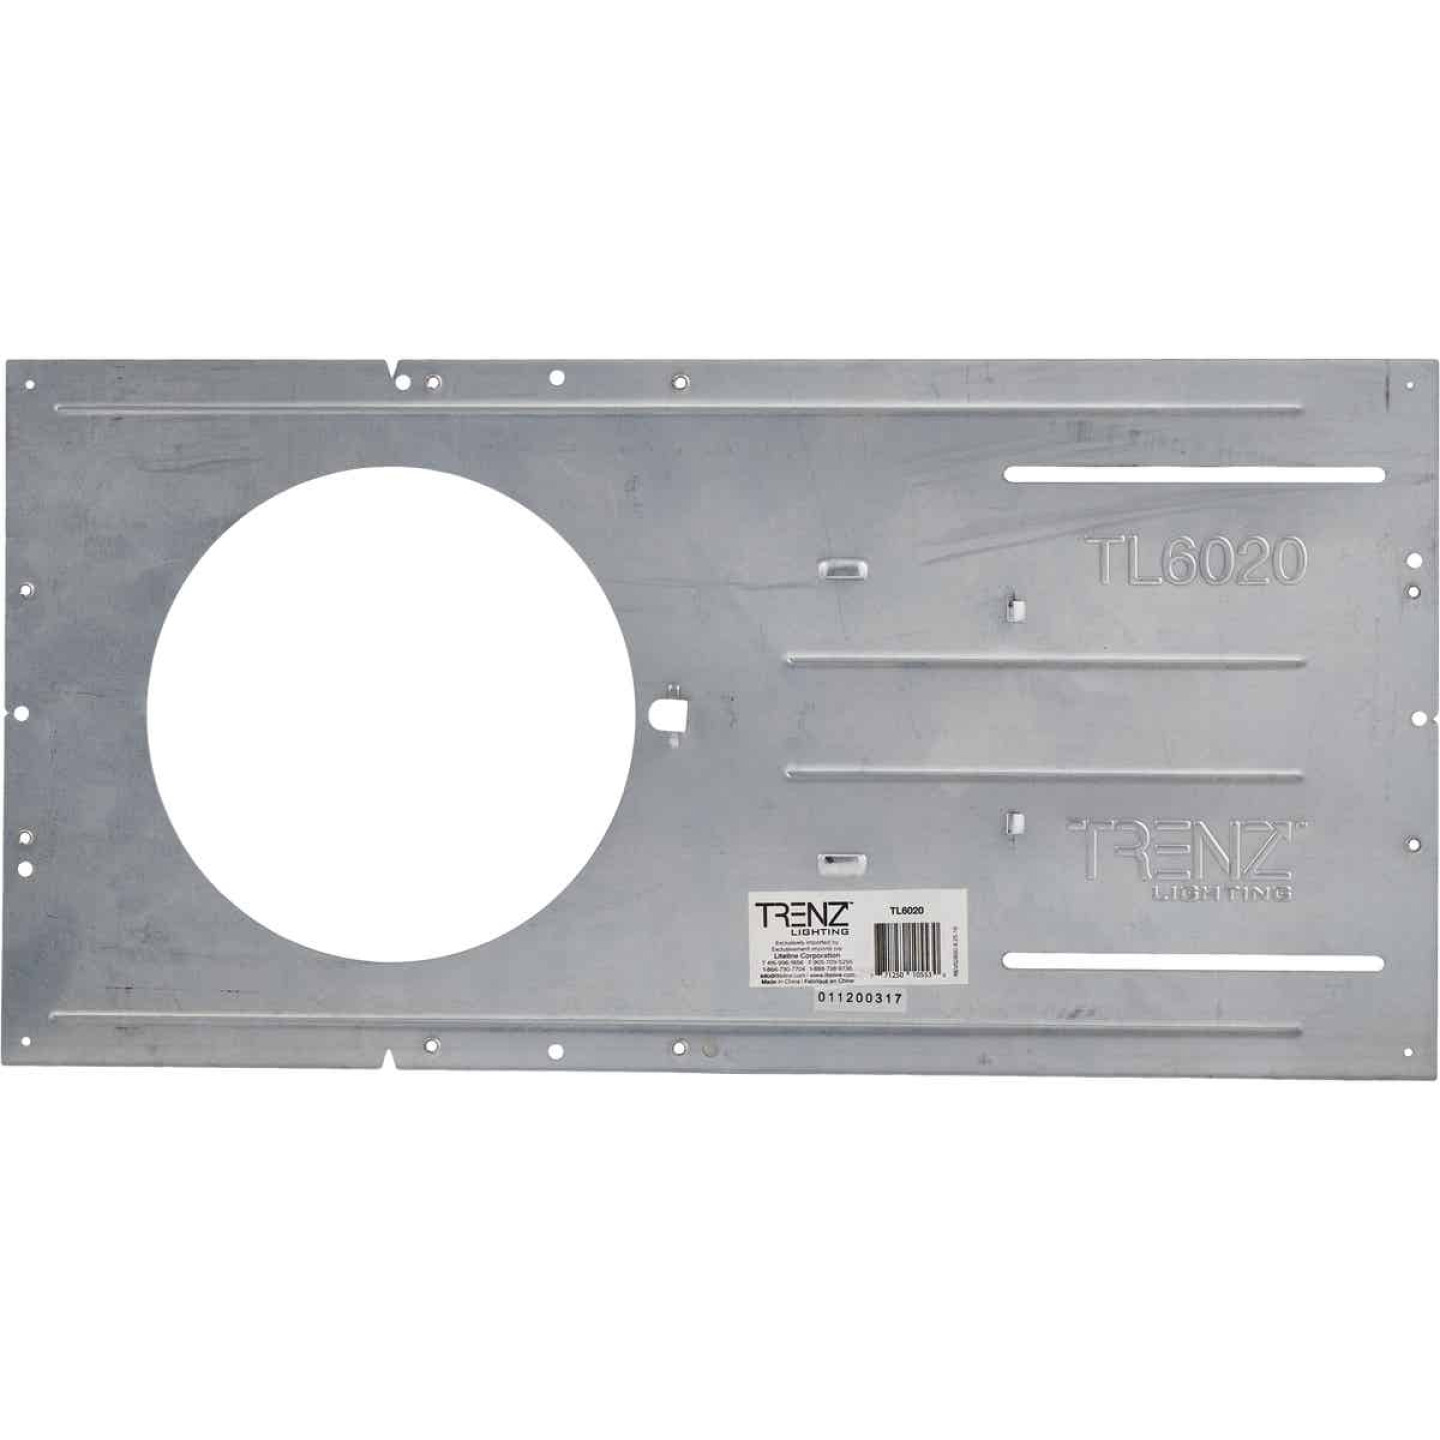 Liteline Trenz ThinLED 6 In. Round Recessed Fixture Mounting Plate Image 2